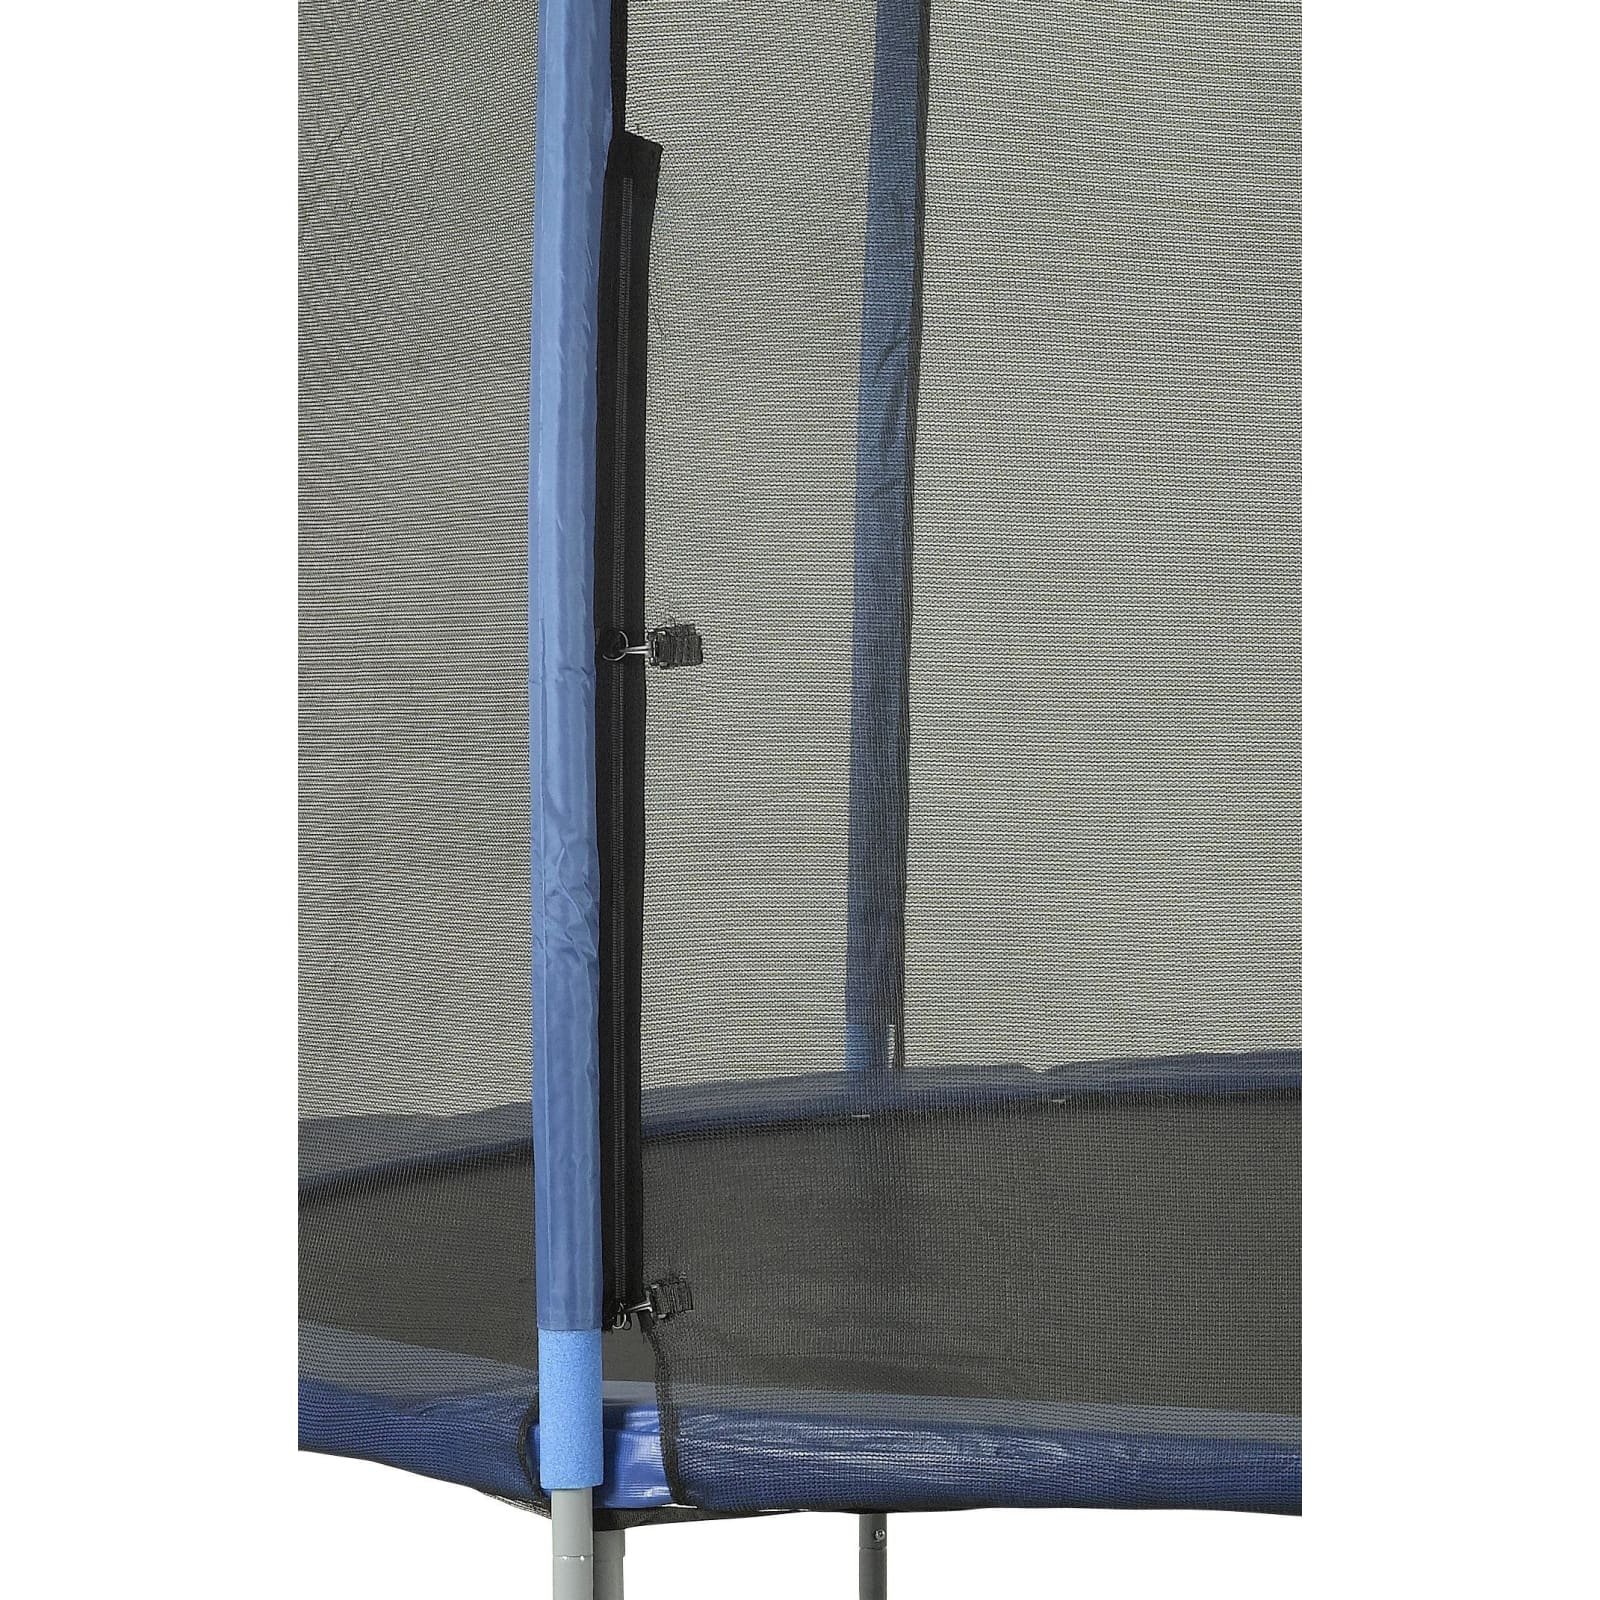 Bouncytrampolines Upper Bounce Trampoline Enclosure Set To Fit 13 Ft Round Frames For 3 Or 6 Bouncy Trampolines